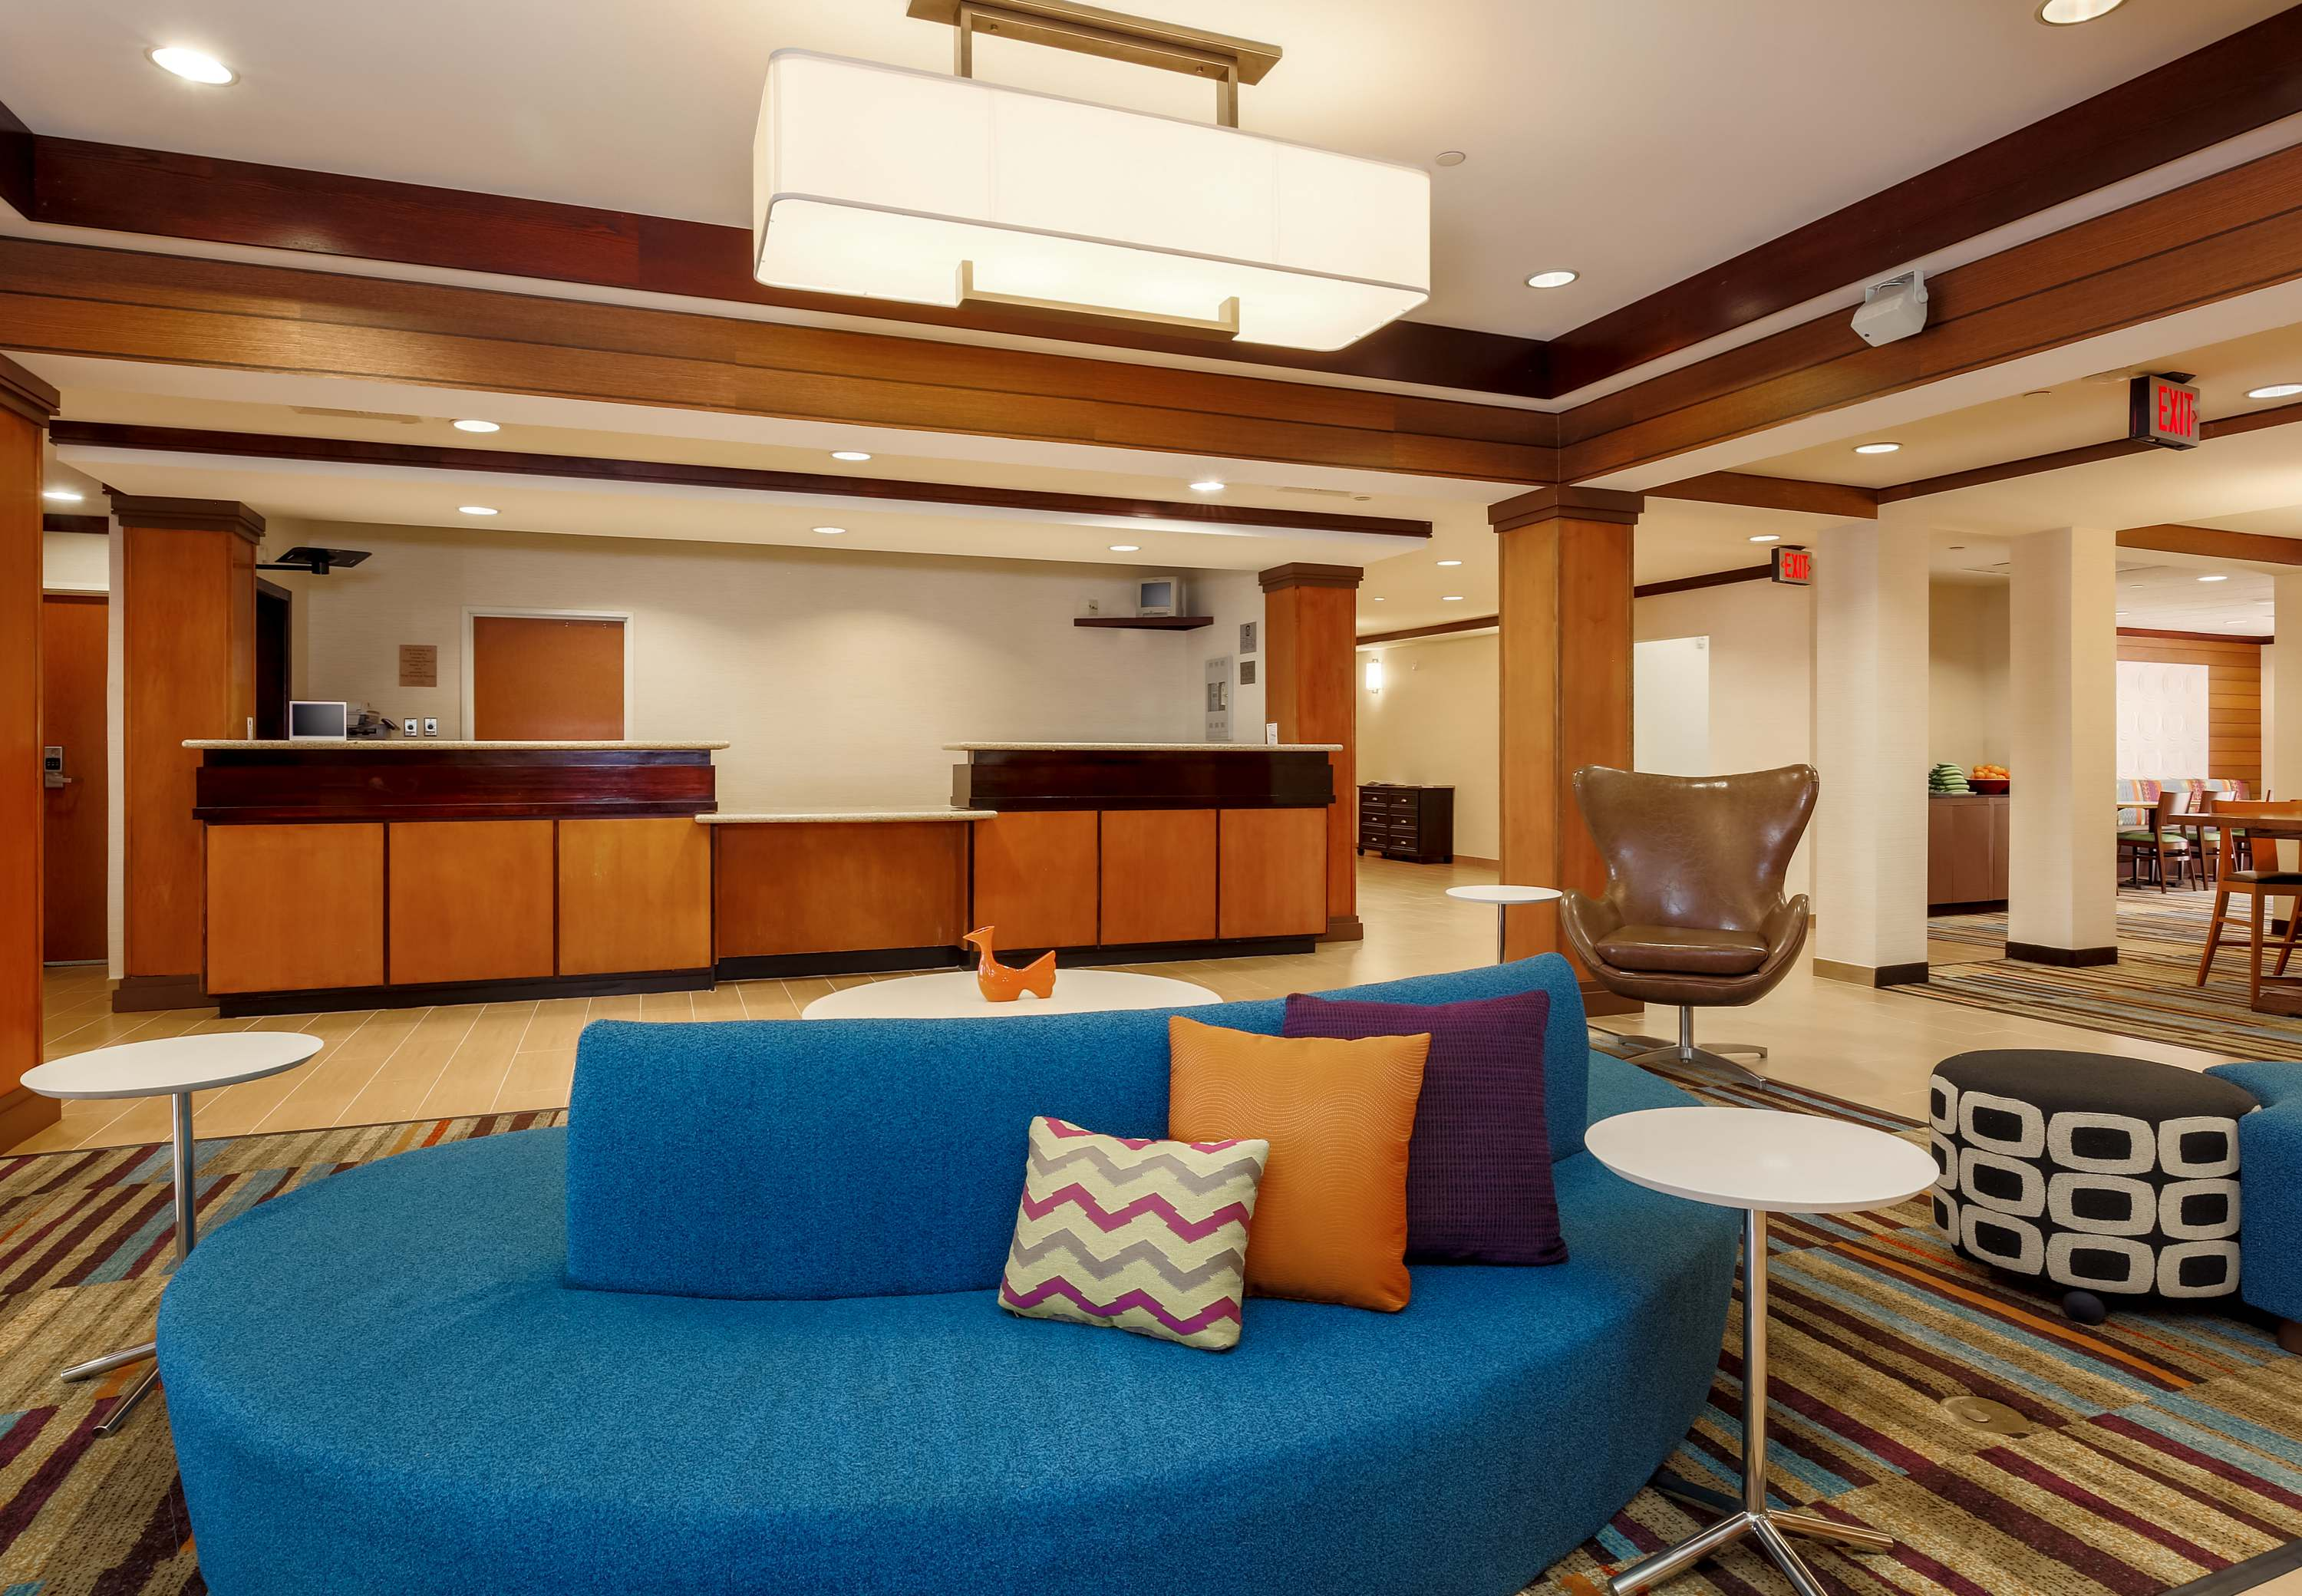 Fairfield Inn & Suites by Marriott Las Vegas South